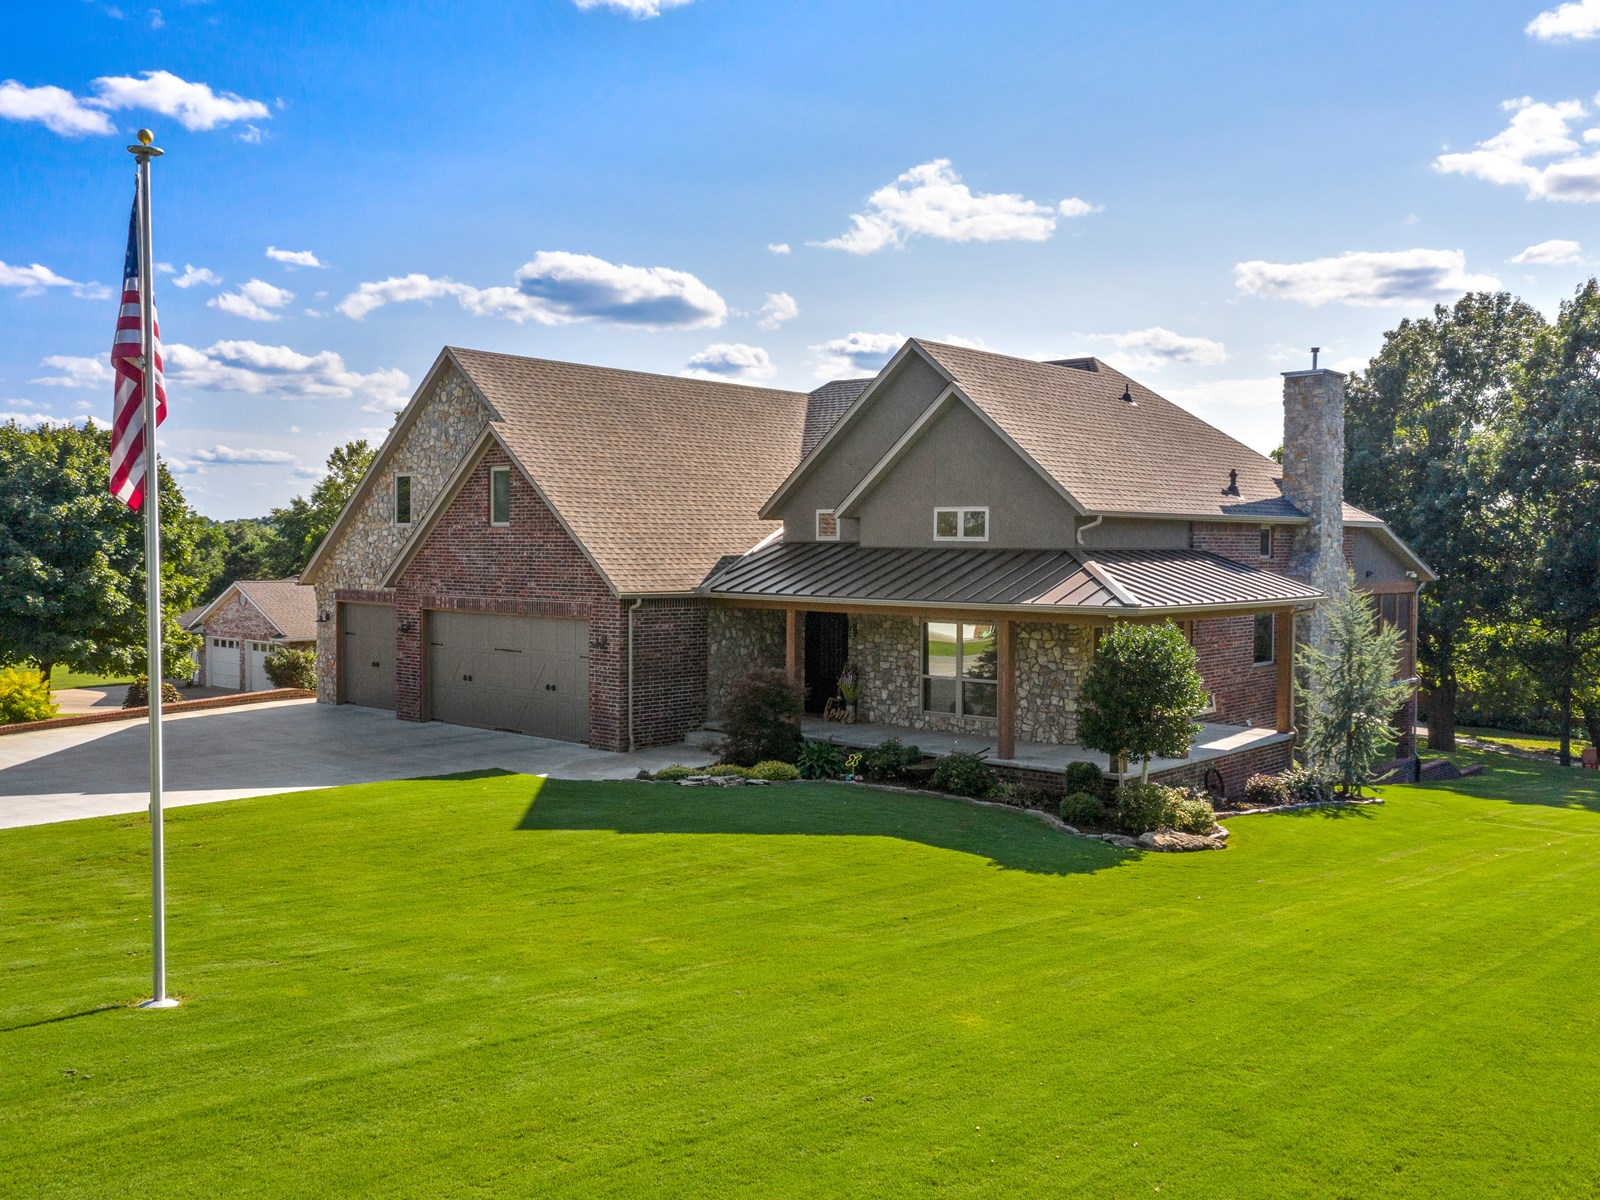 LAKEFRONT COUNTRY HOME FOR SALE IN OKLAHOMA